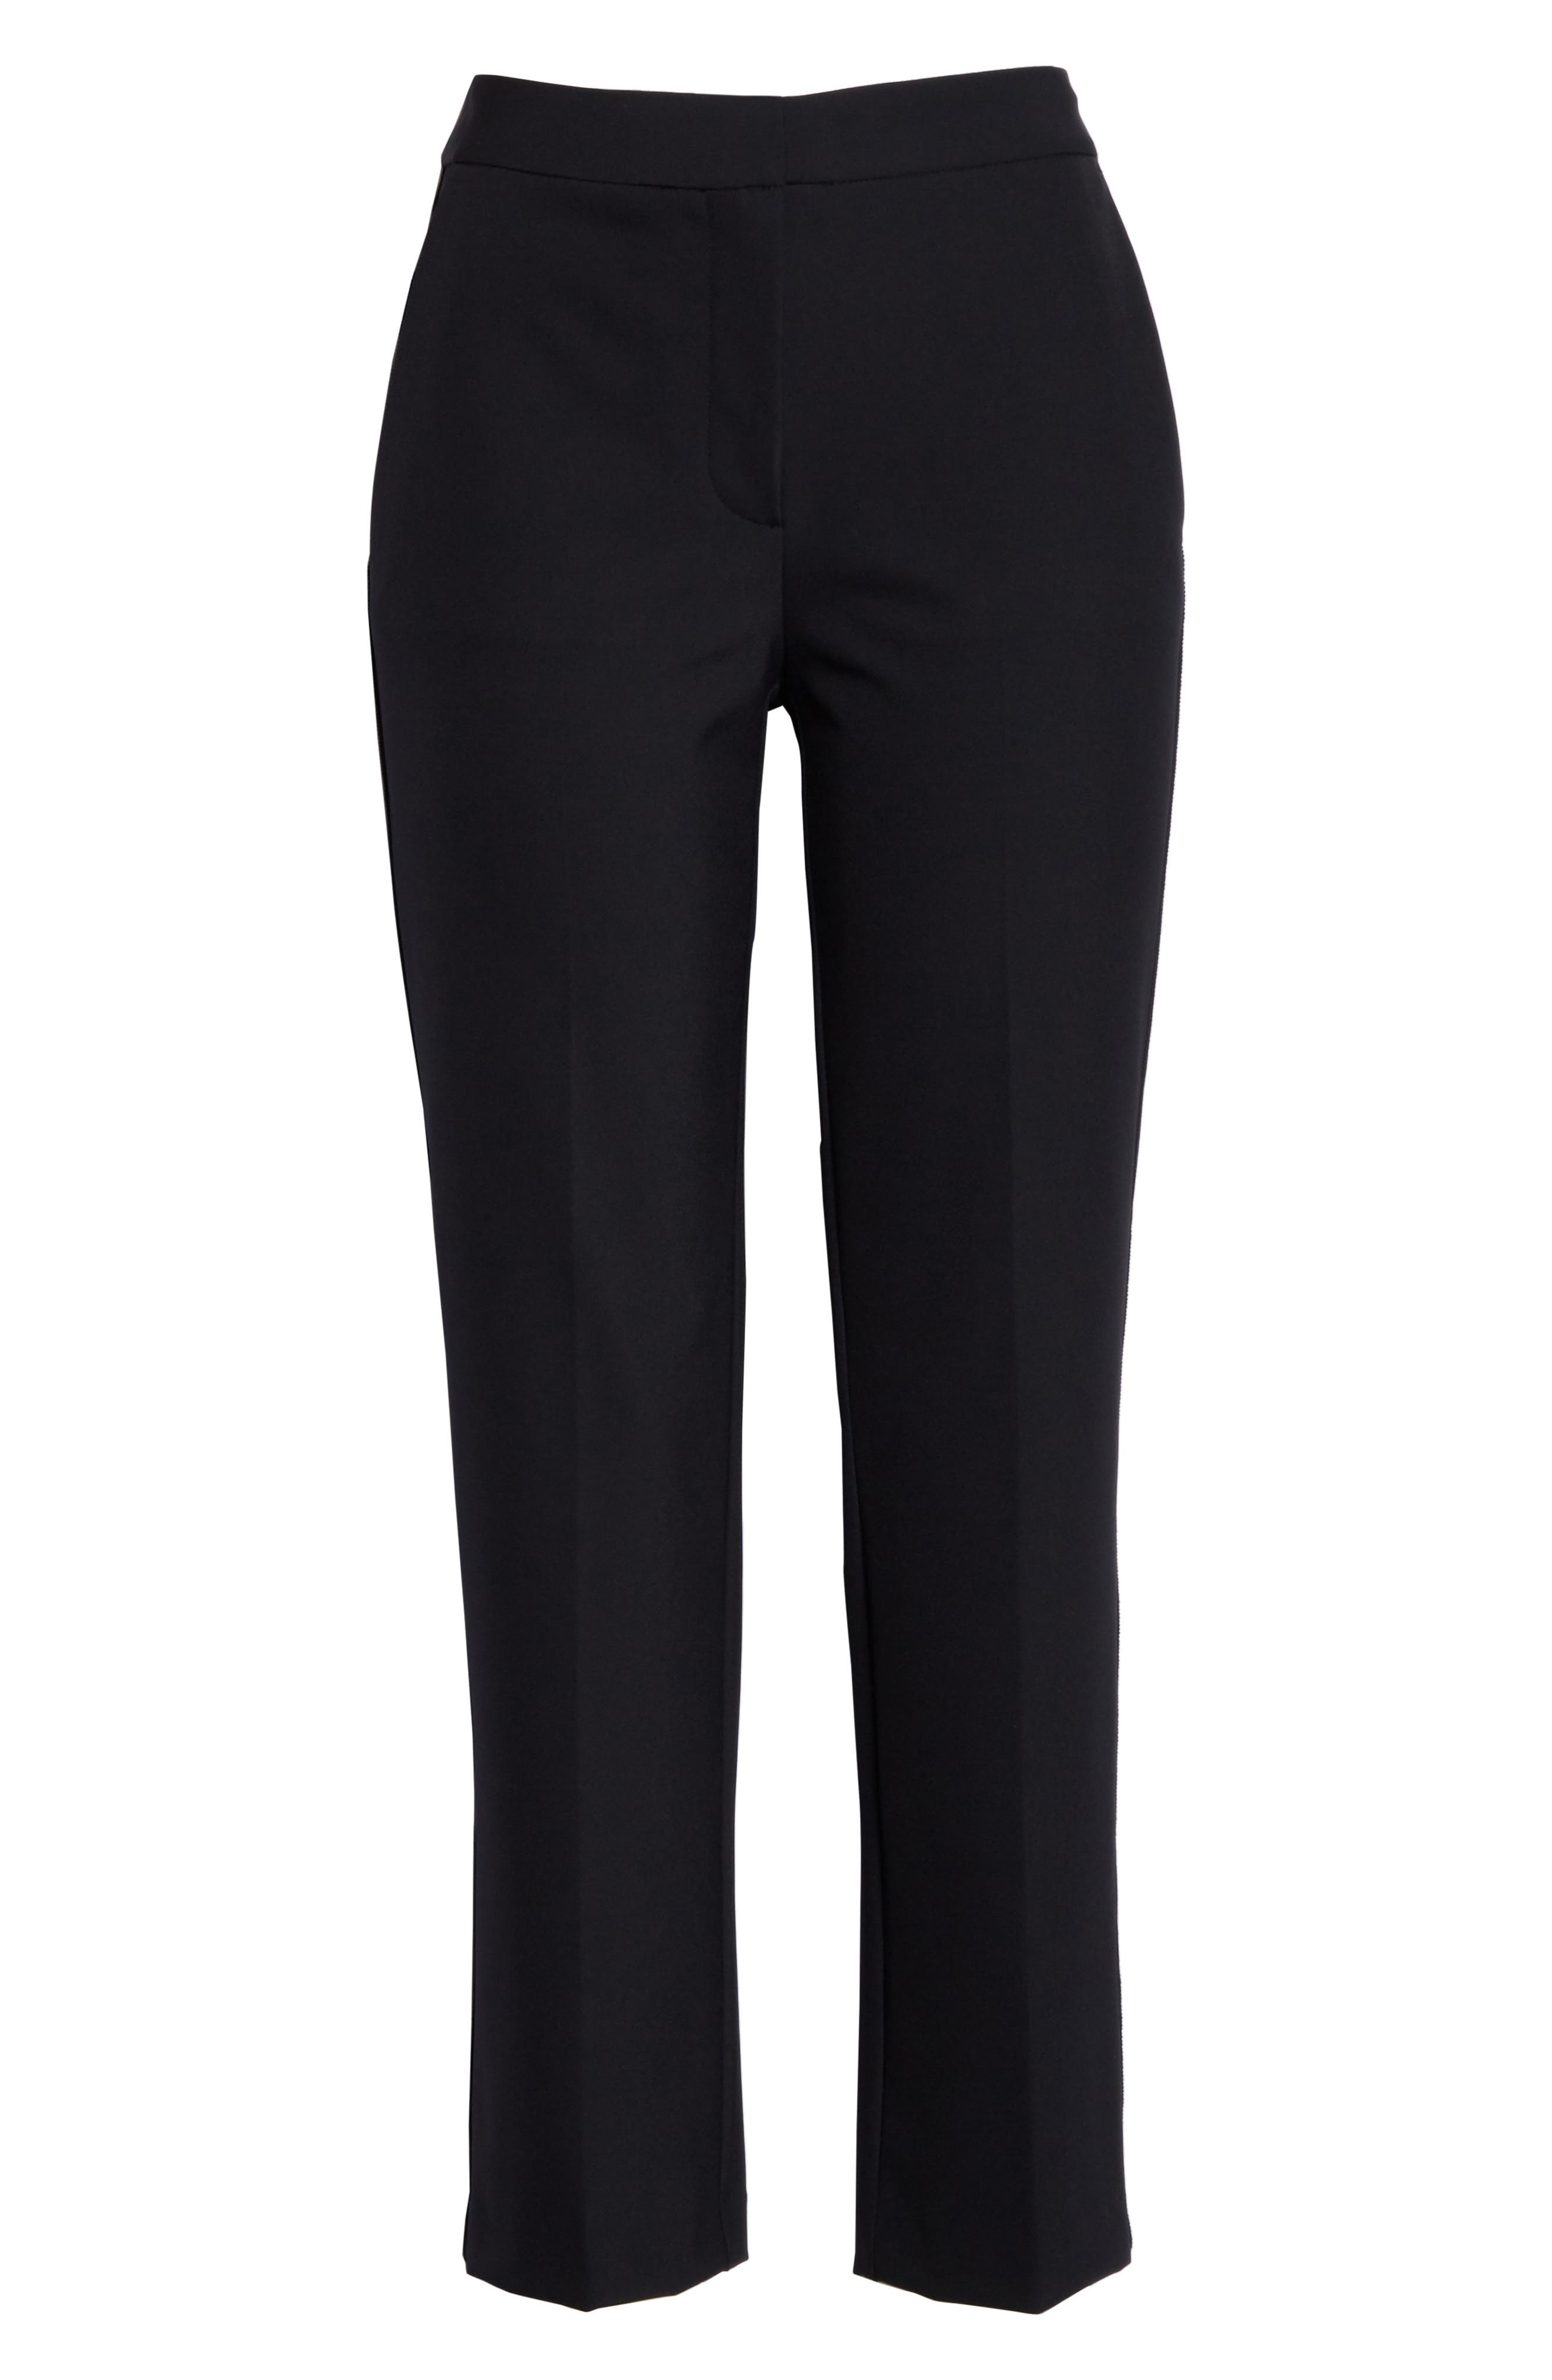 Audra Crop Pants,                             Alternate thumbnail 6, color,                             Black